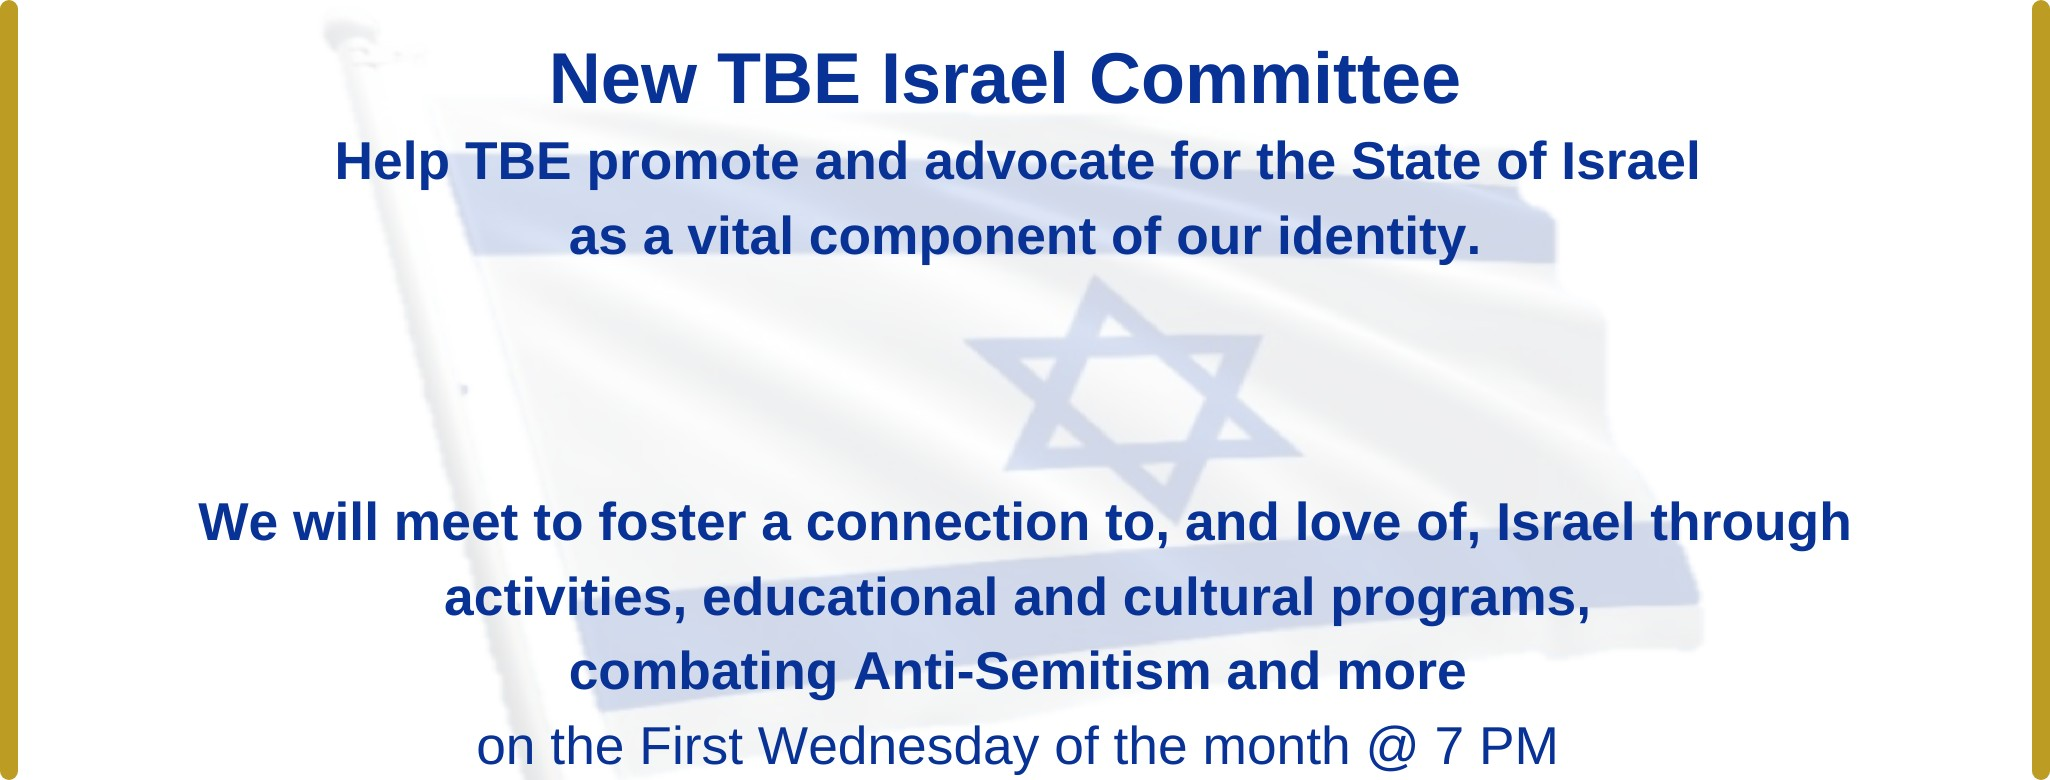 "<a href=""https://www.templebethel.com/israel-committee.html""